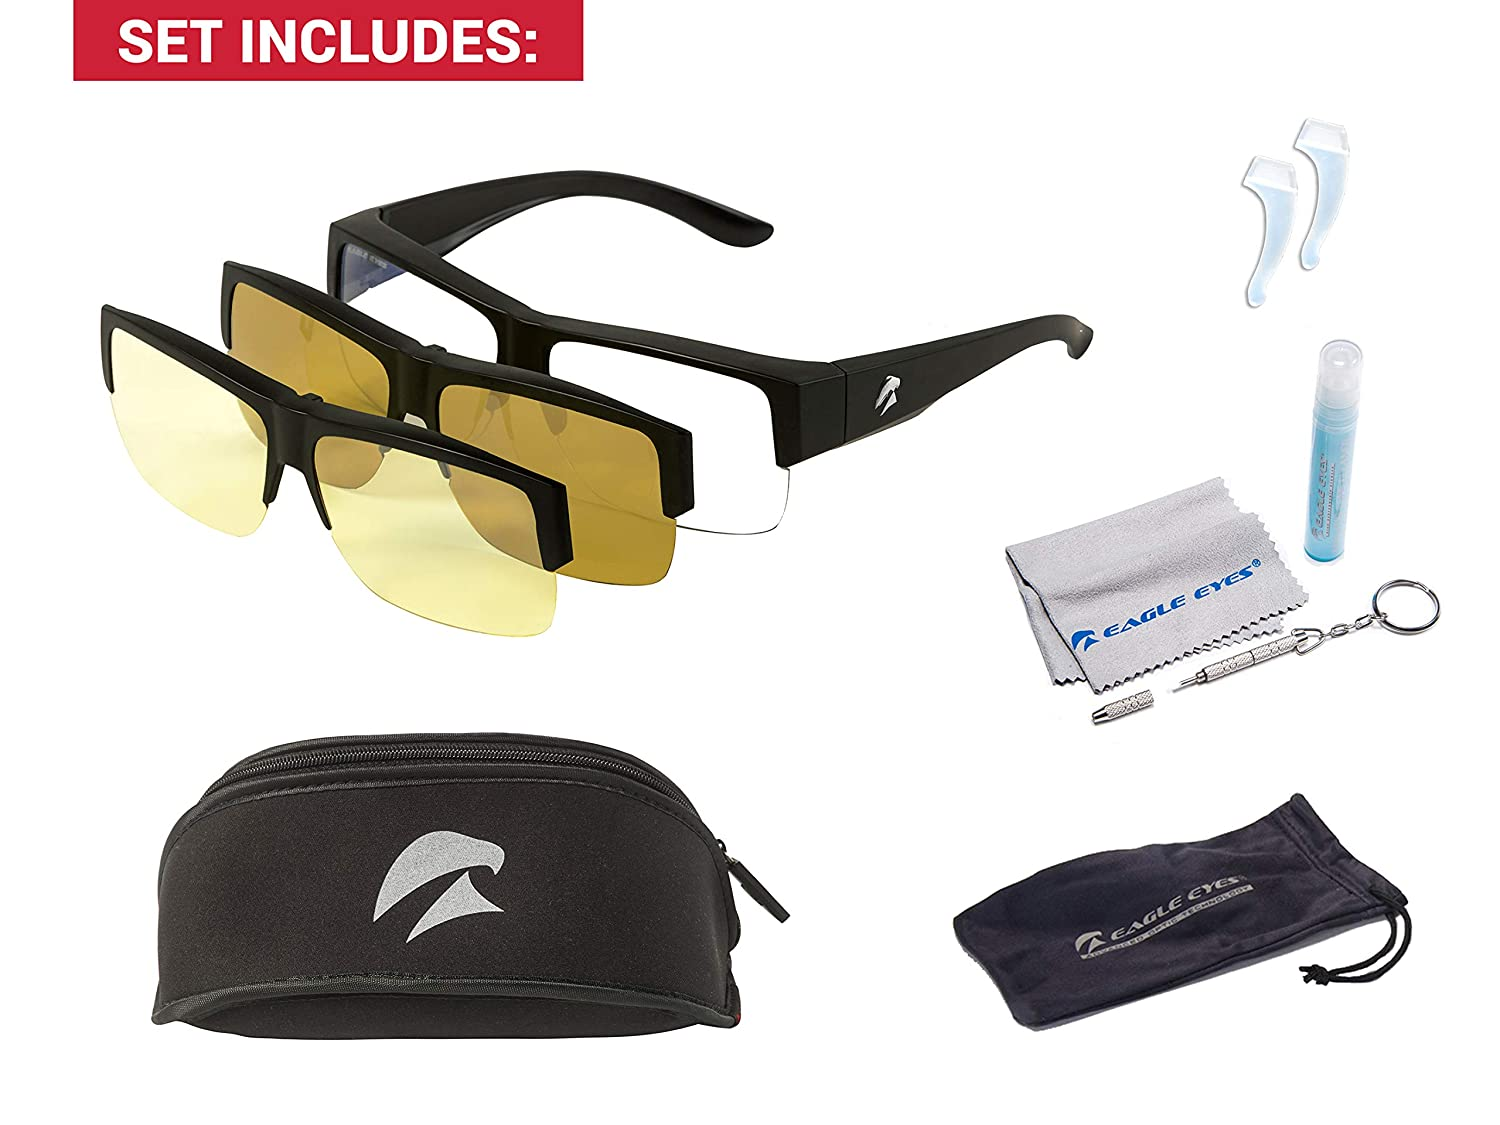 14ea4f344e Eagle Eyes 3in1 SuperSight Magnetic System Glasses - Computer Base Lens  with Magnetic Polarized Sunglasses Night Driving Clip-on - Block Blue  Light UV Rays